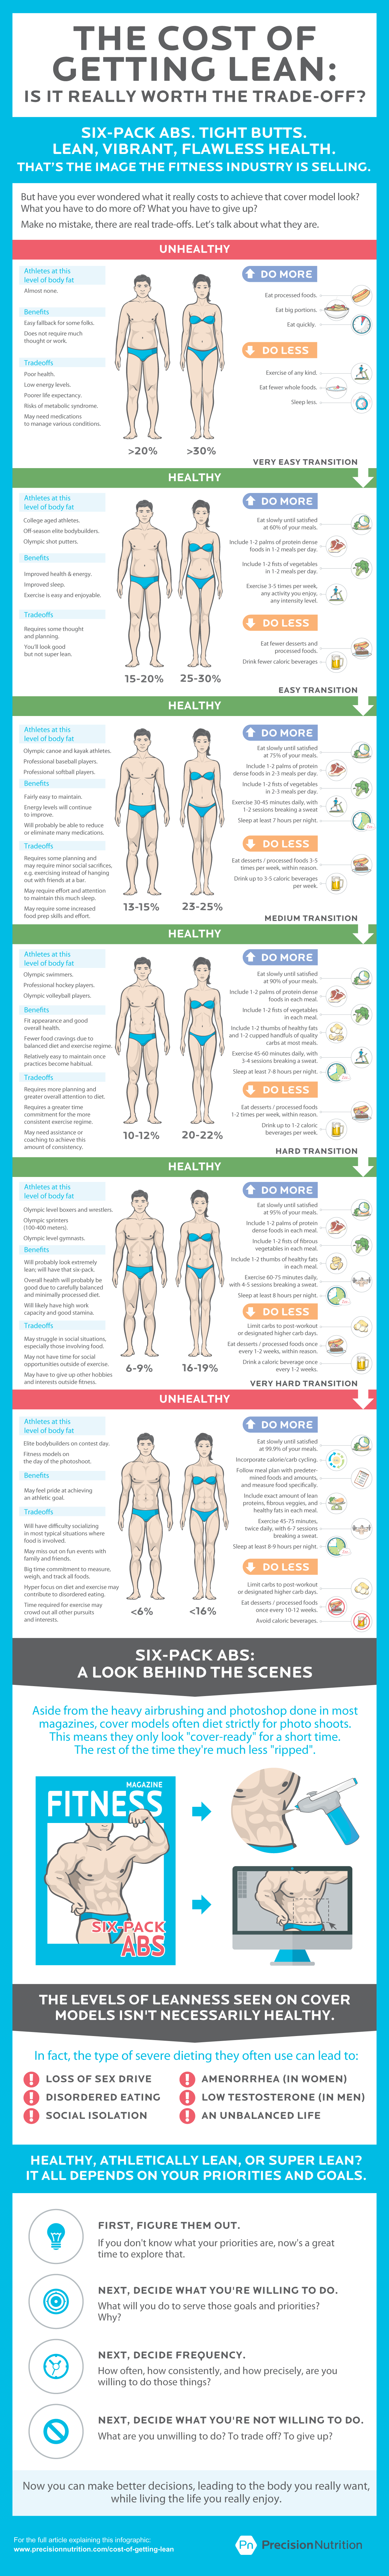 precision nutrition cost of getting lean infographic The cost of getting lean: Is it really worth the trade off? [Infographic]